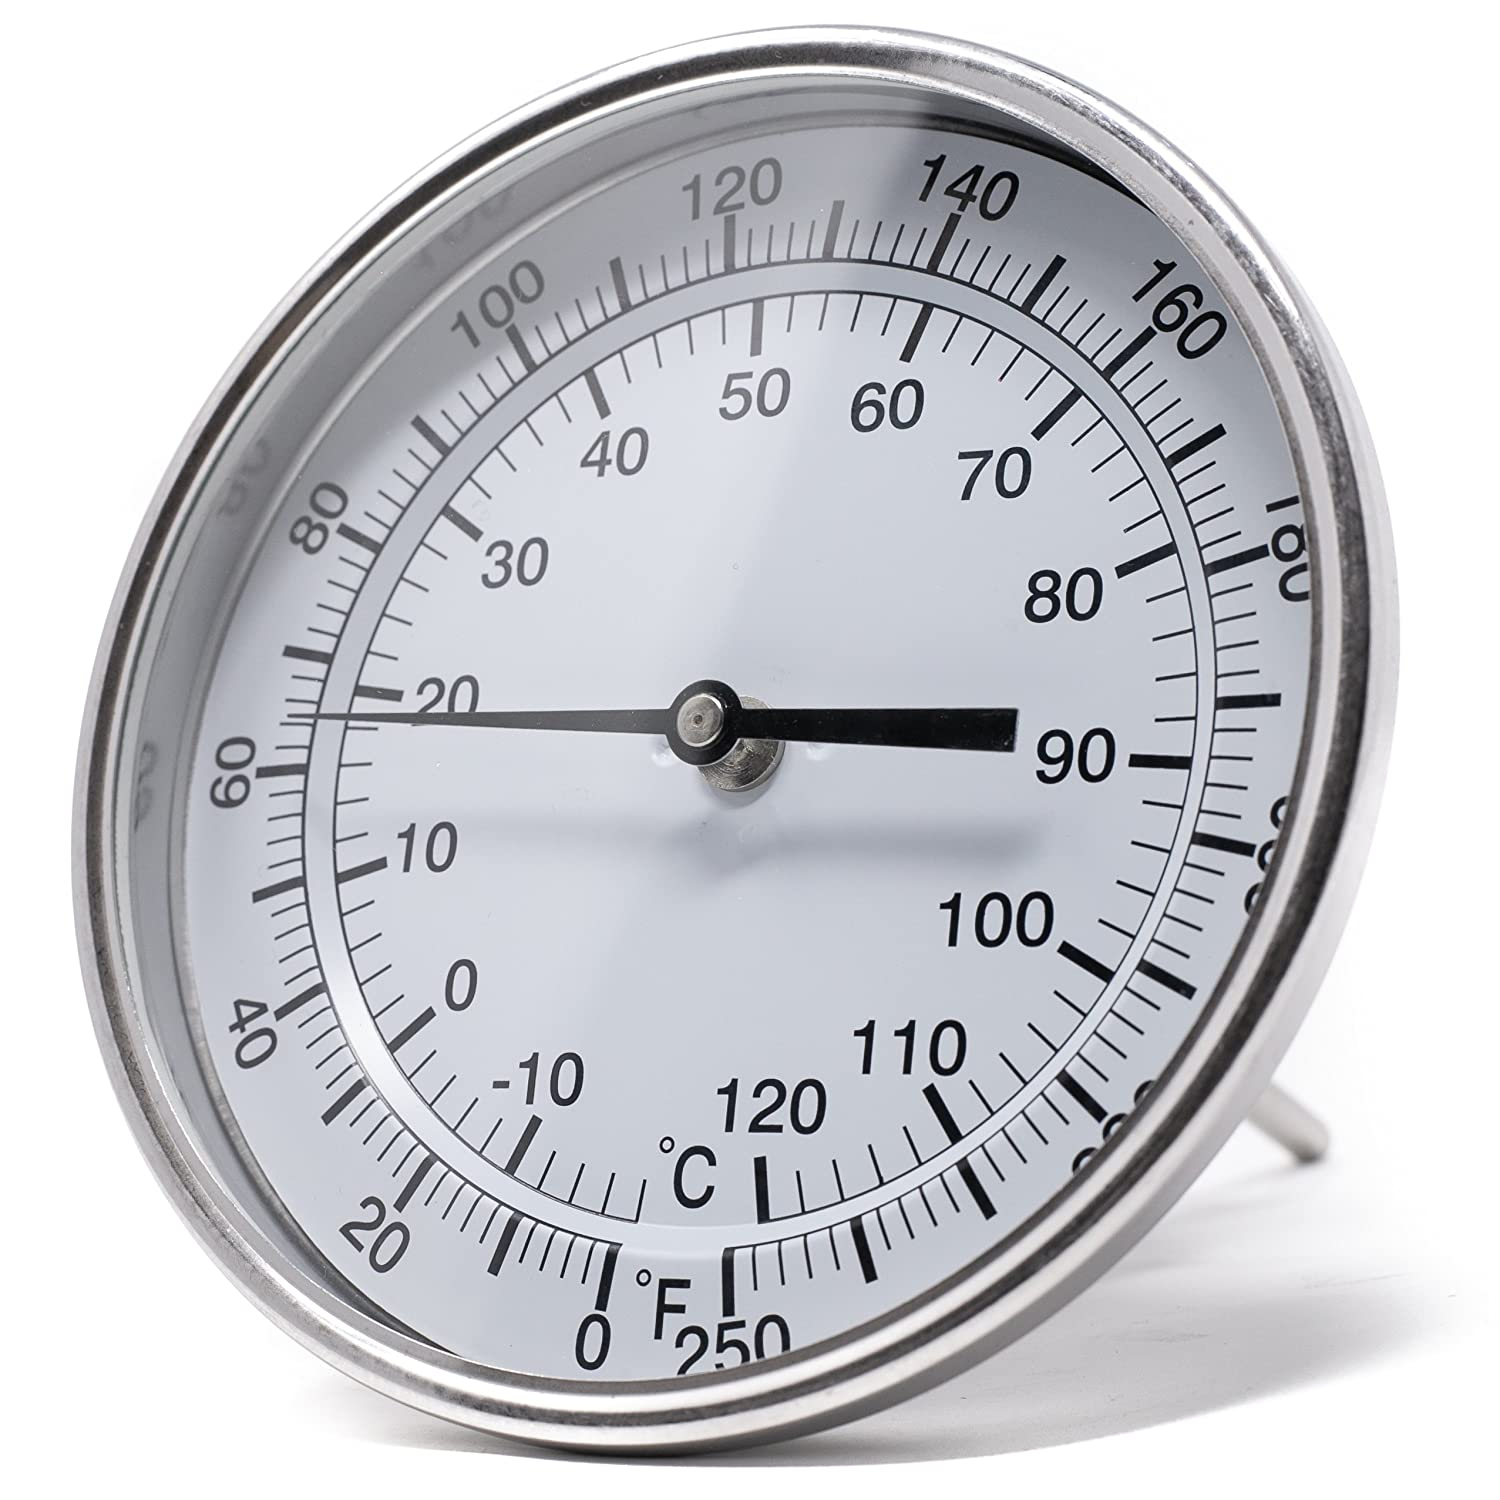 "Stainless Steel Case PIC Gauge B5A2-AA 5/"" Dial Size Adjustable Angle Connection 2 Stem Length 316 Stainless Steel Stem Bimetal Thermometer -40//120/°F and -40//50/°C"